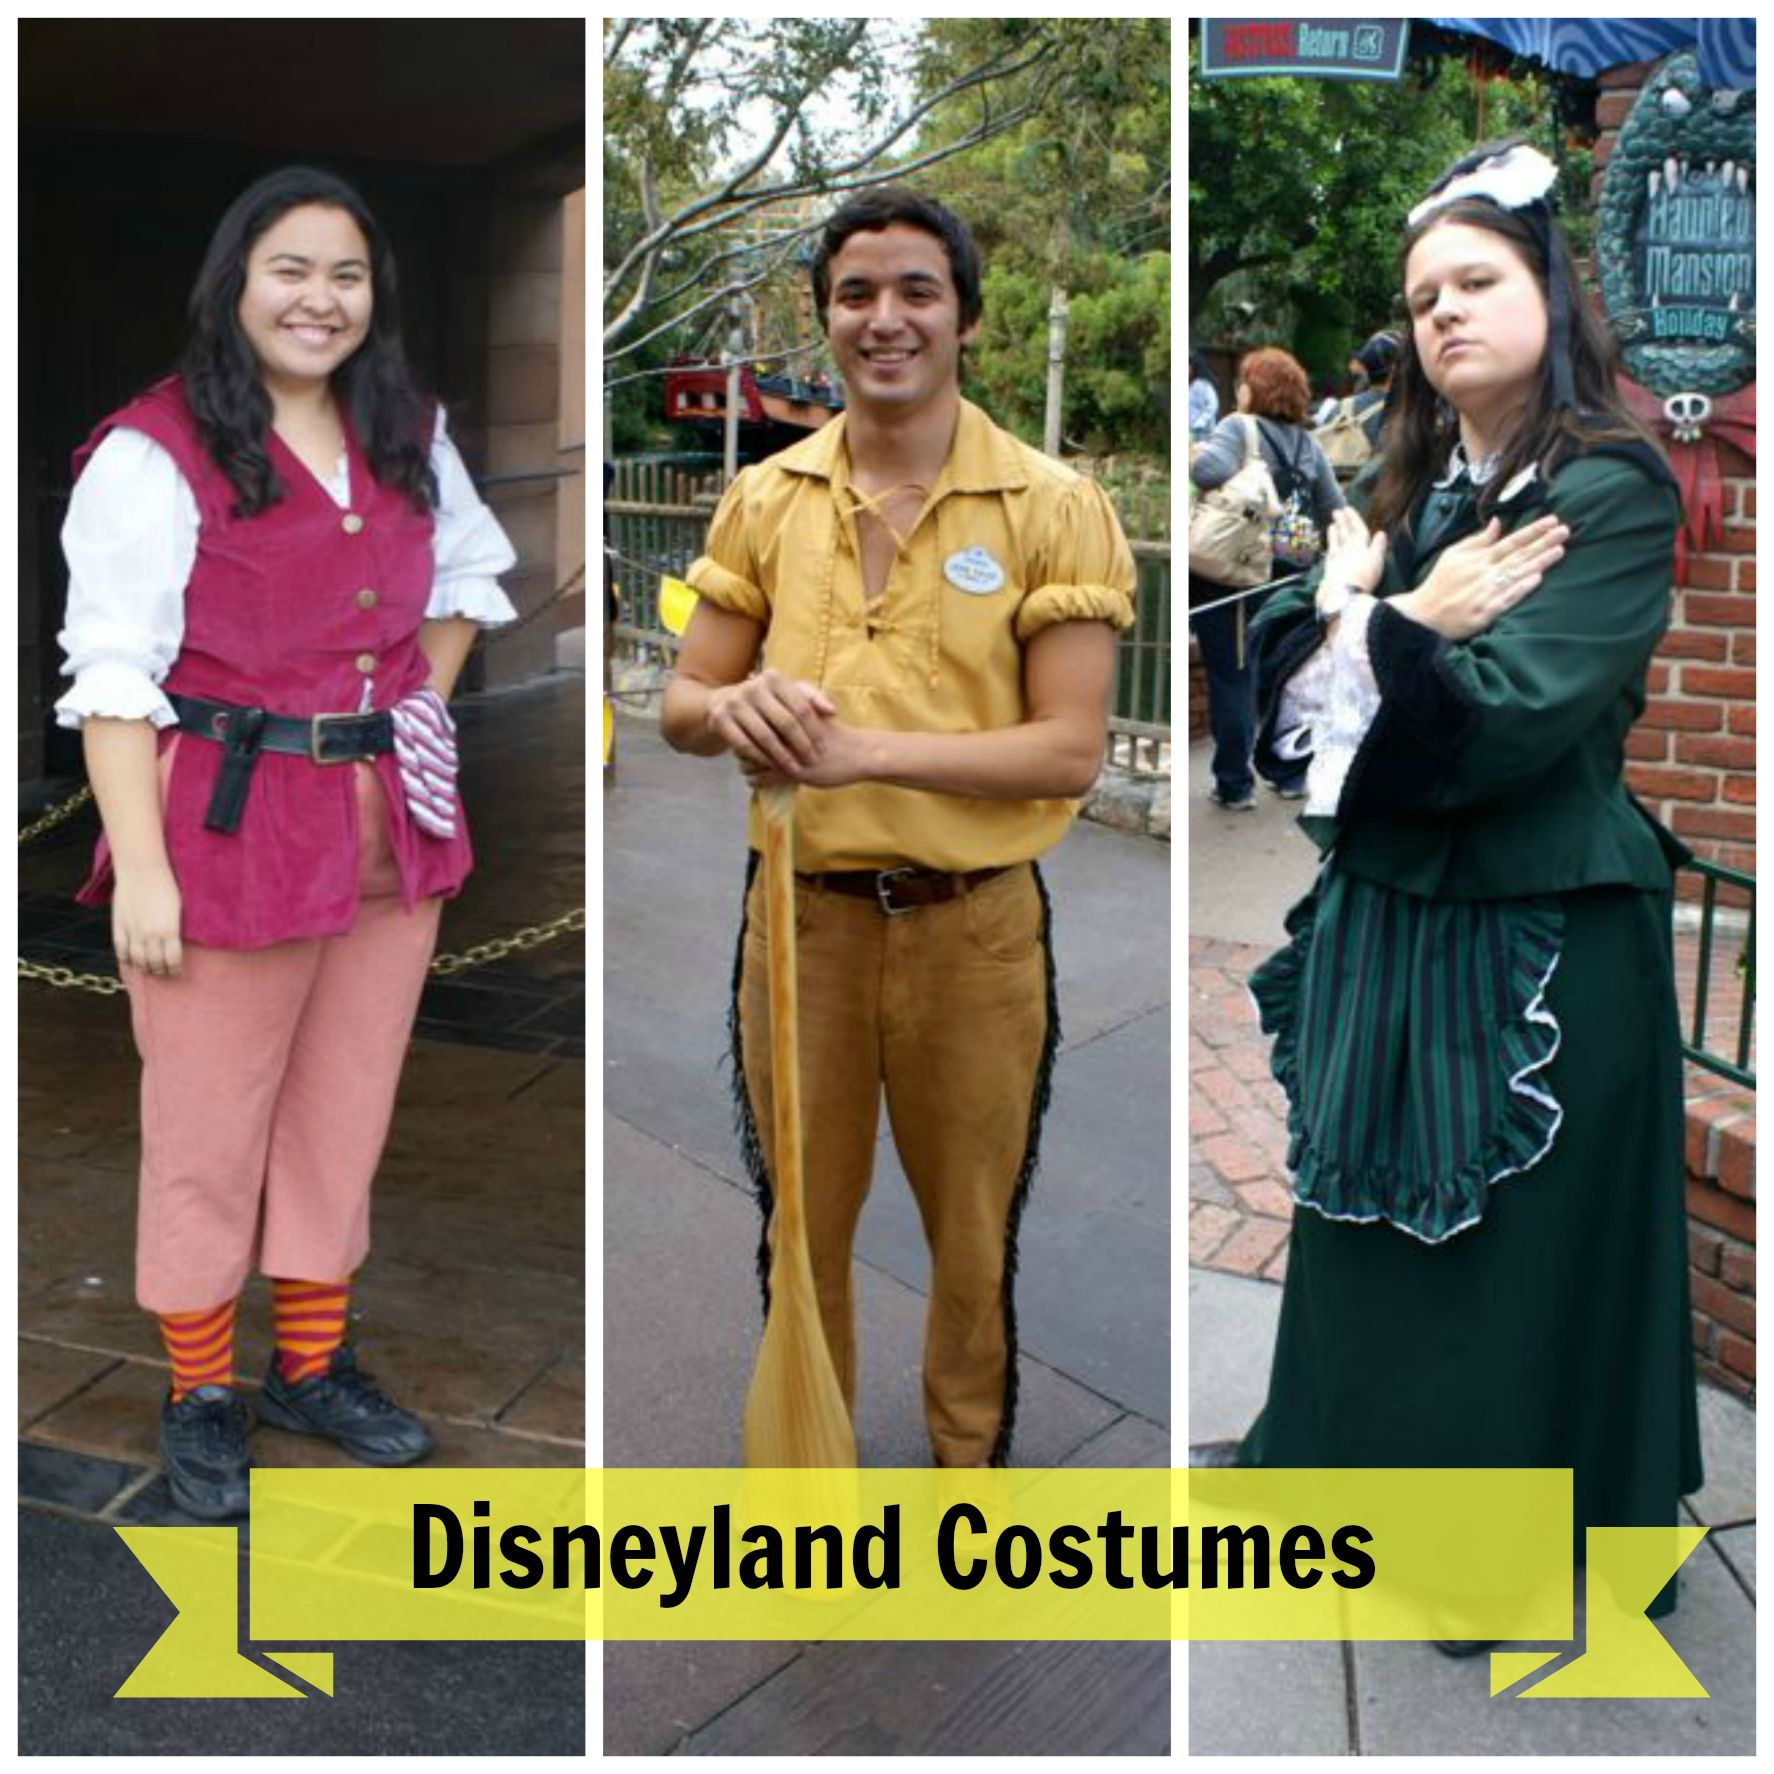 Fish tank kings cast - Disneyland Style Cast Member Costumes Part 1 Photos